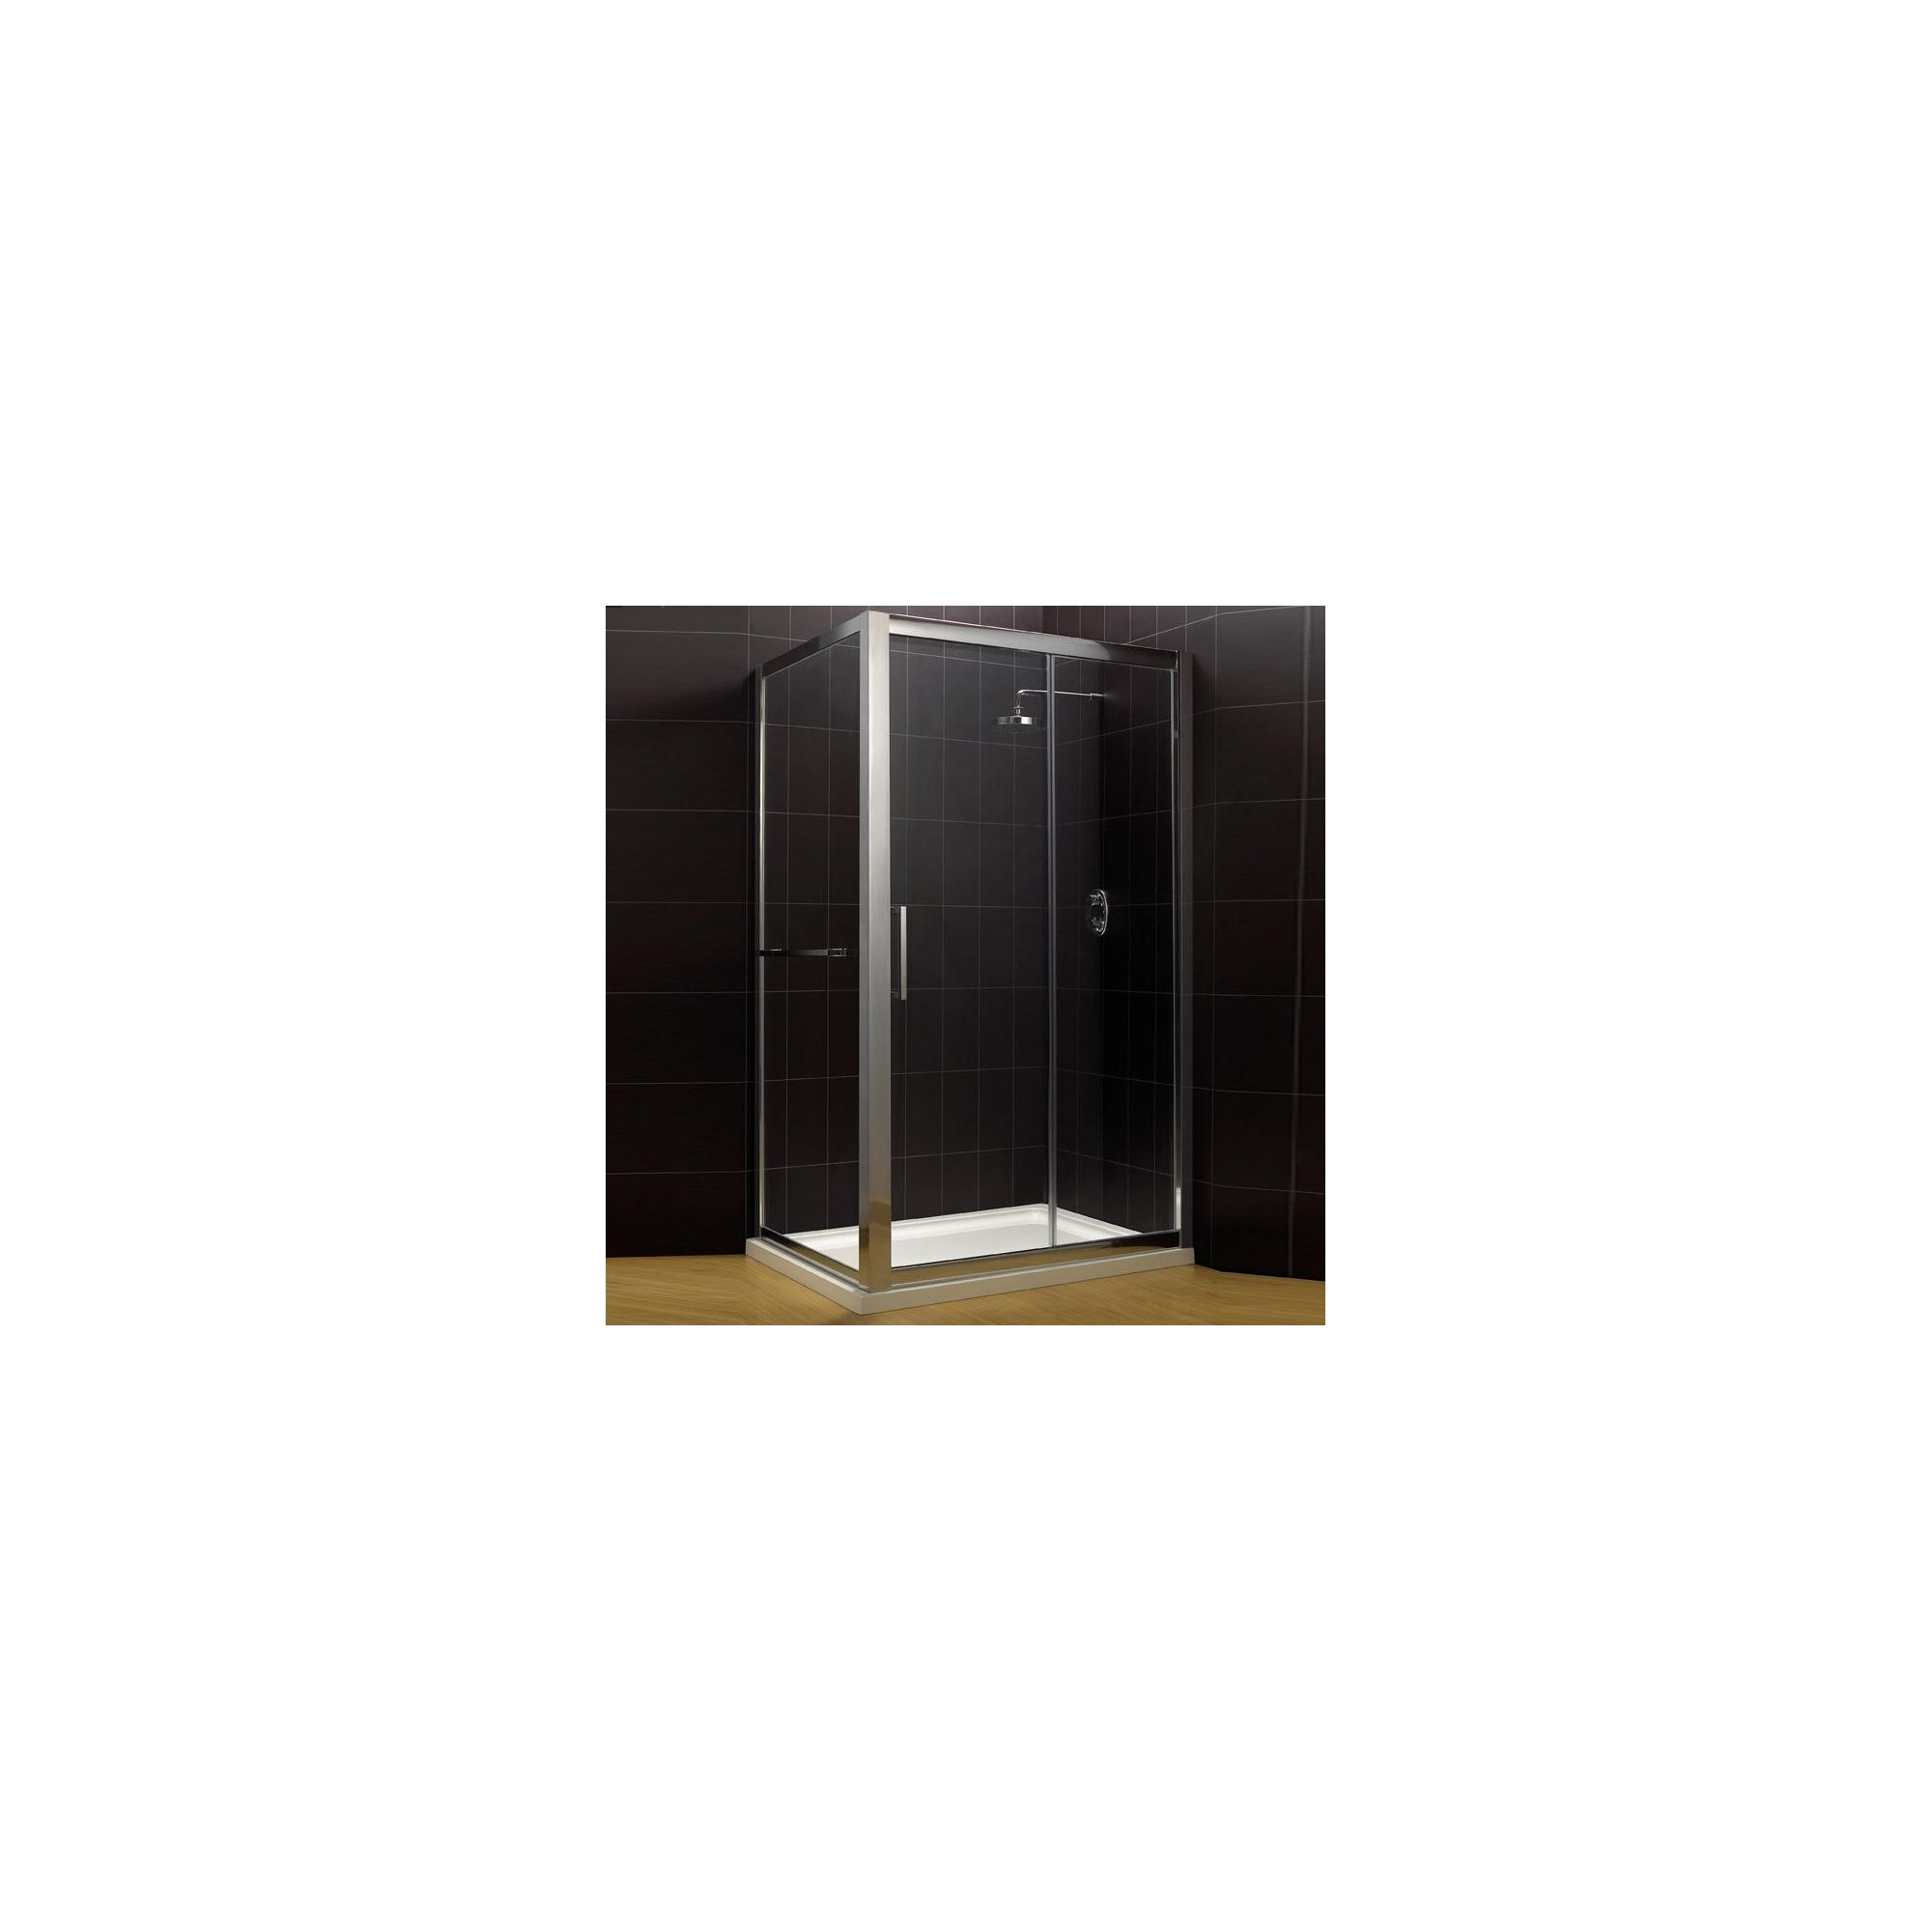 Duchy Supreme Silver Sliding Door Shower Enclosure, 1100mm x 760mm, Standard Tray, 8mm Glass at Tescos Direct